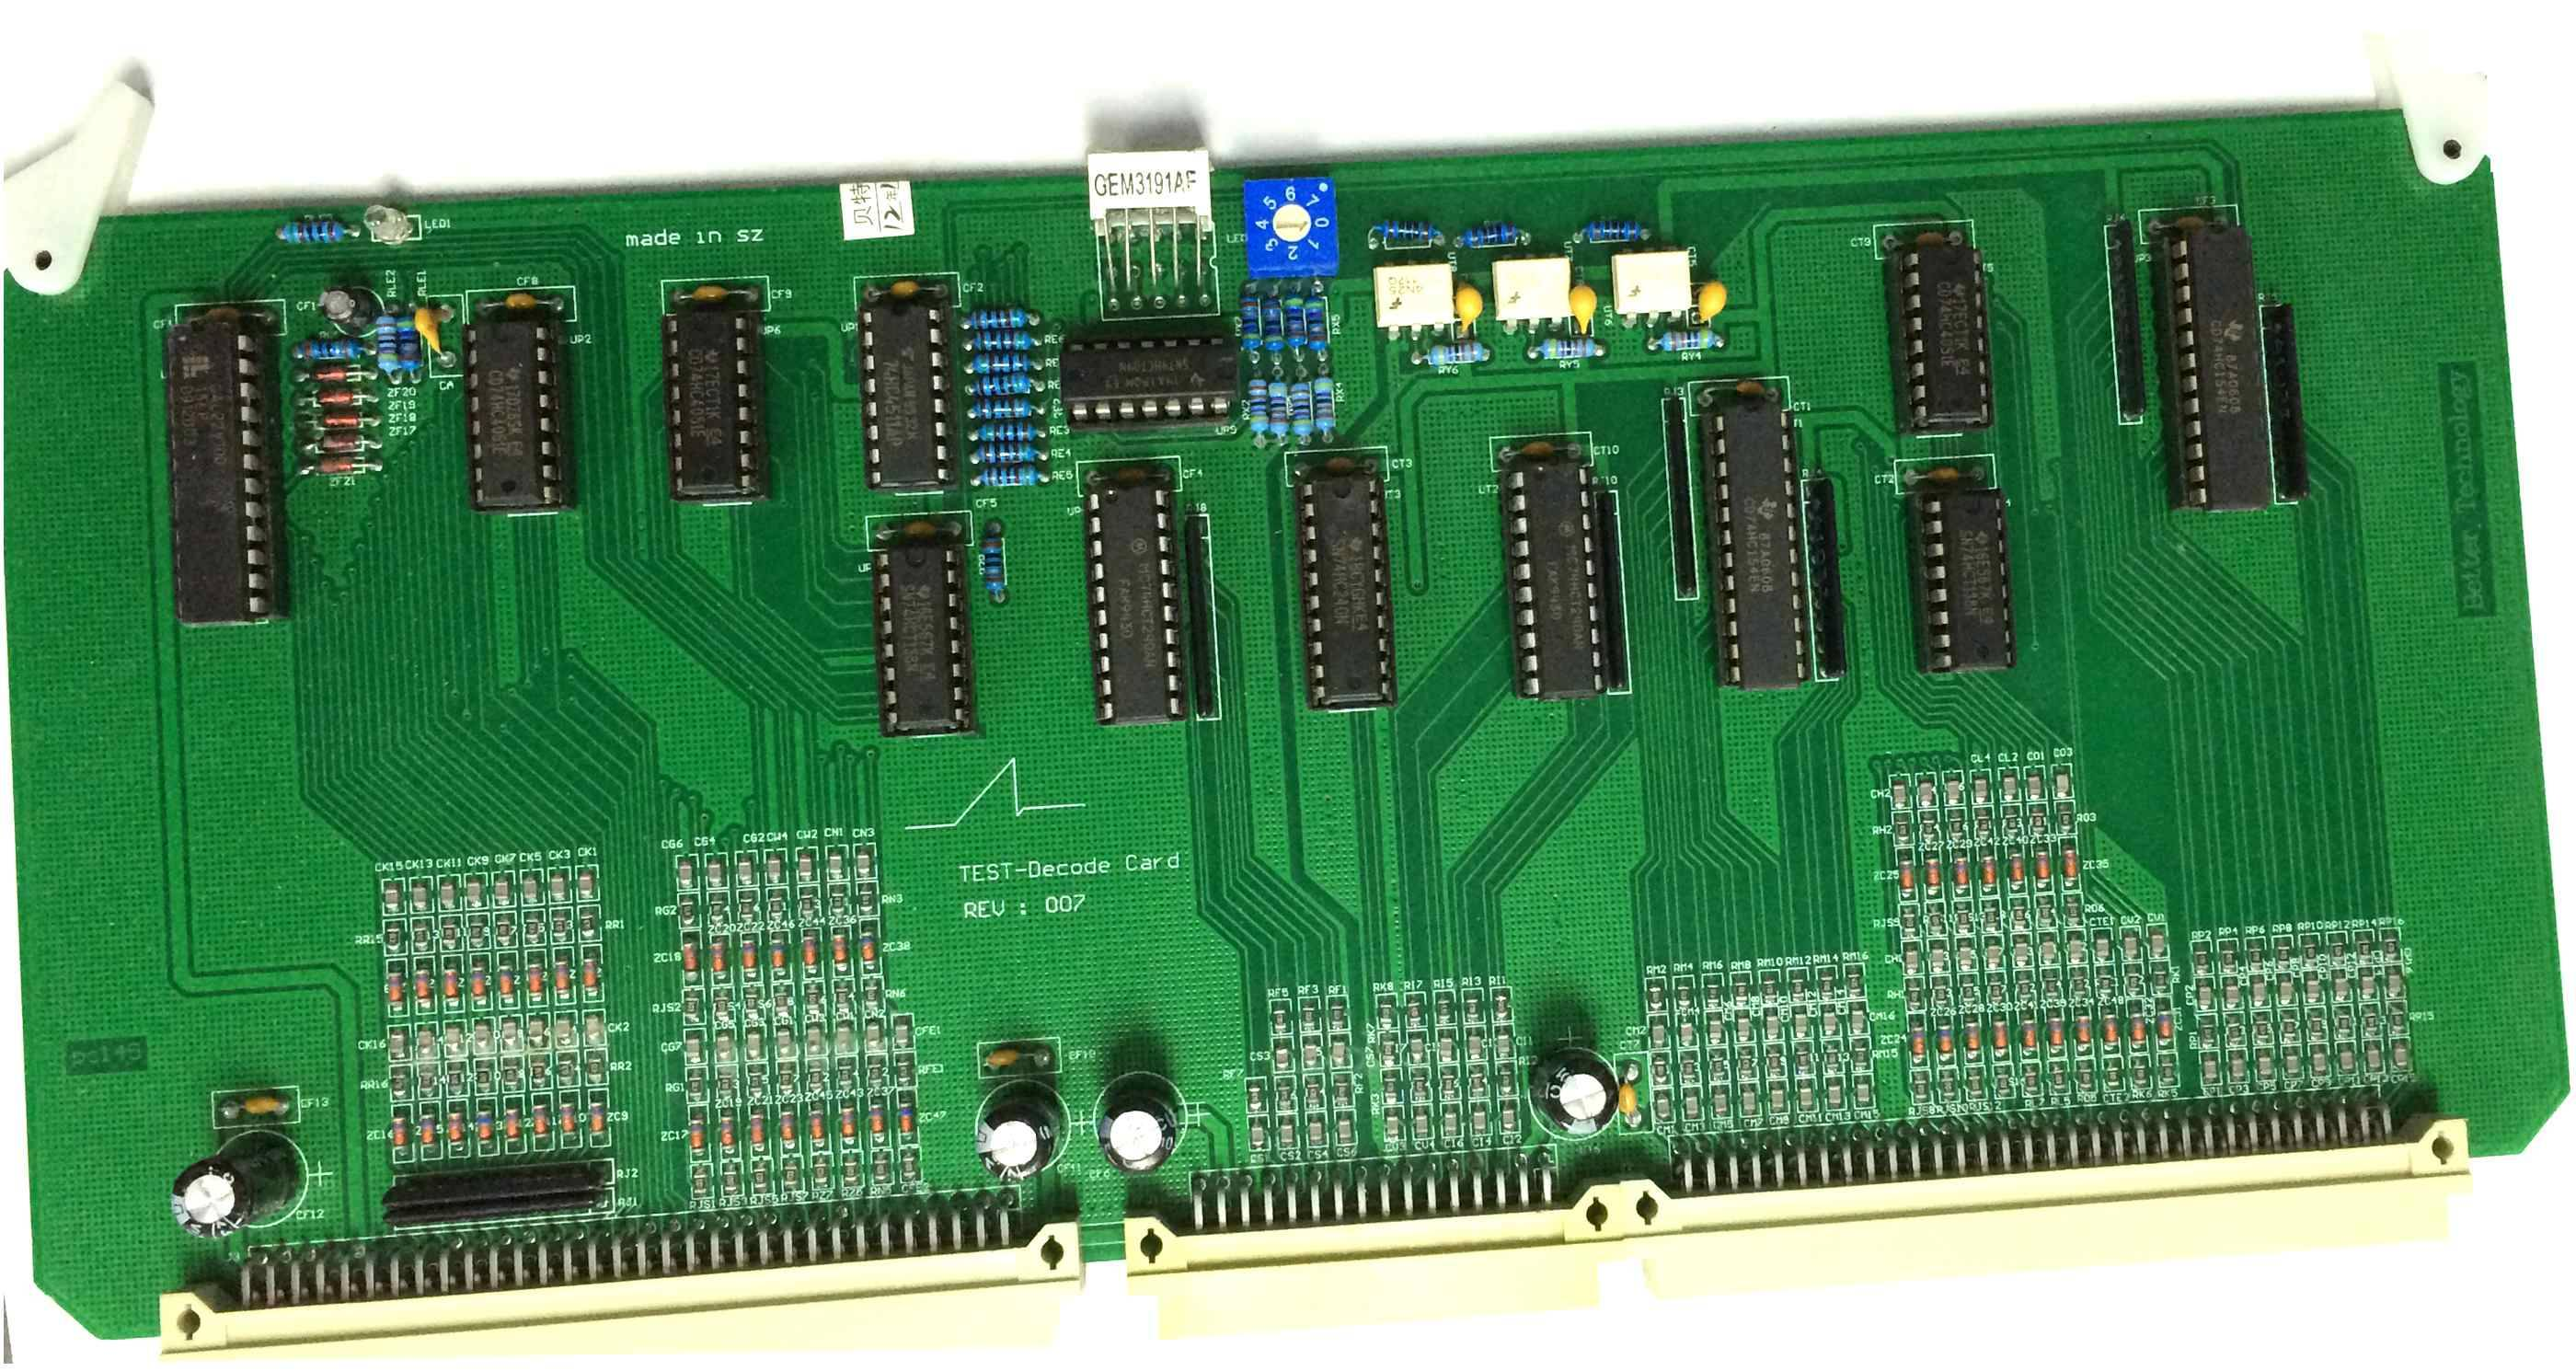 6 layer PCBA for industrial control With UL Approval